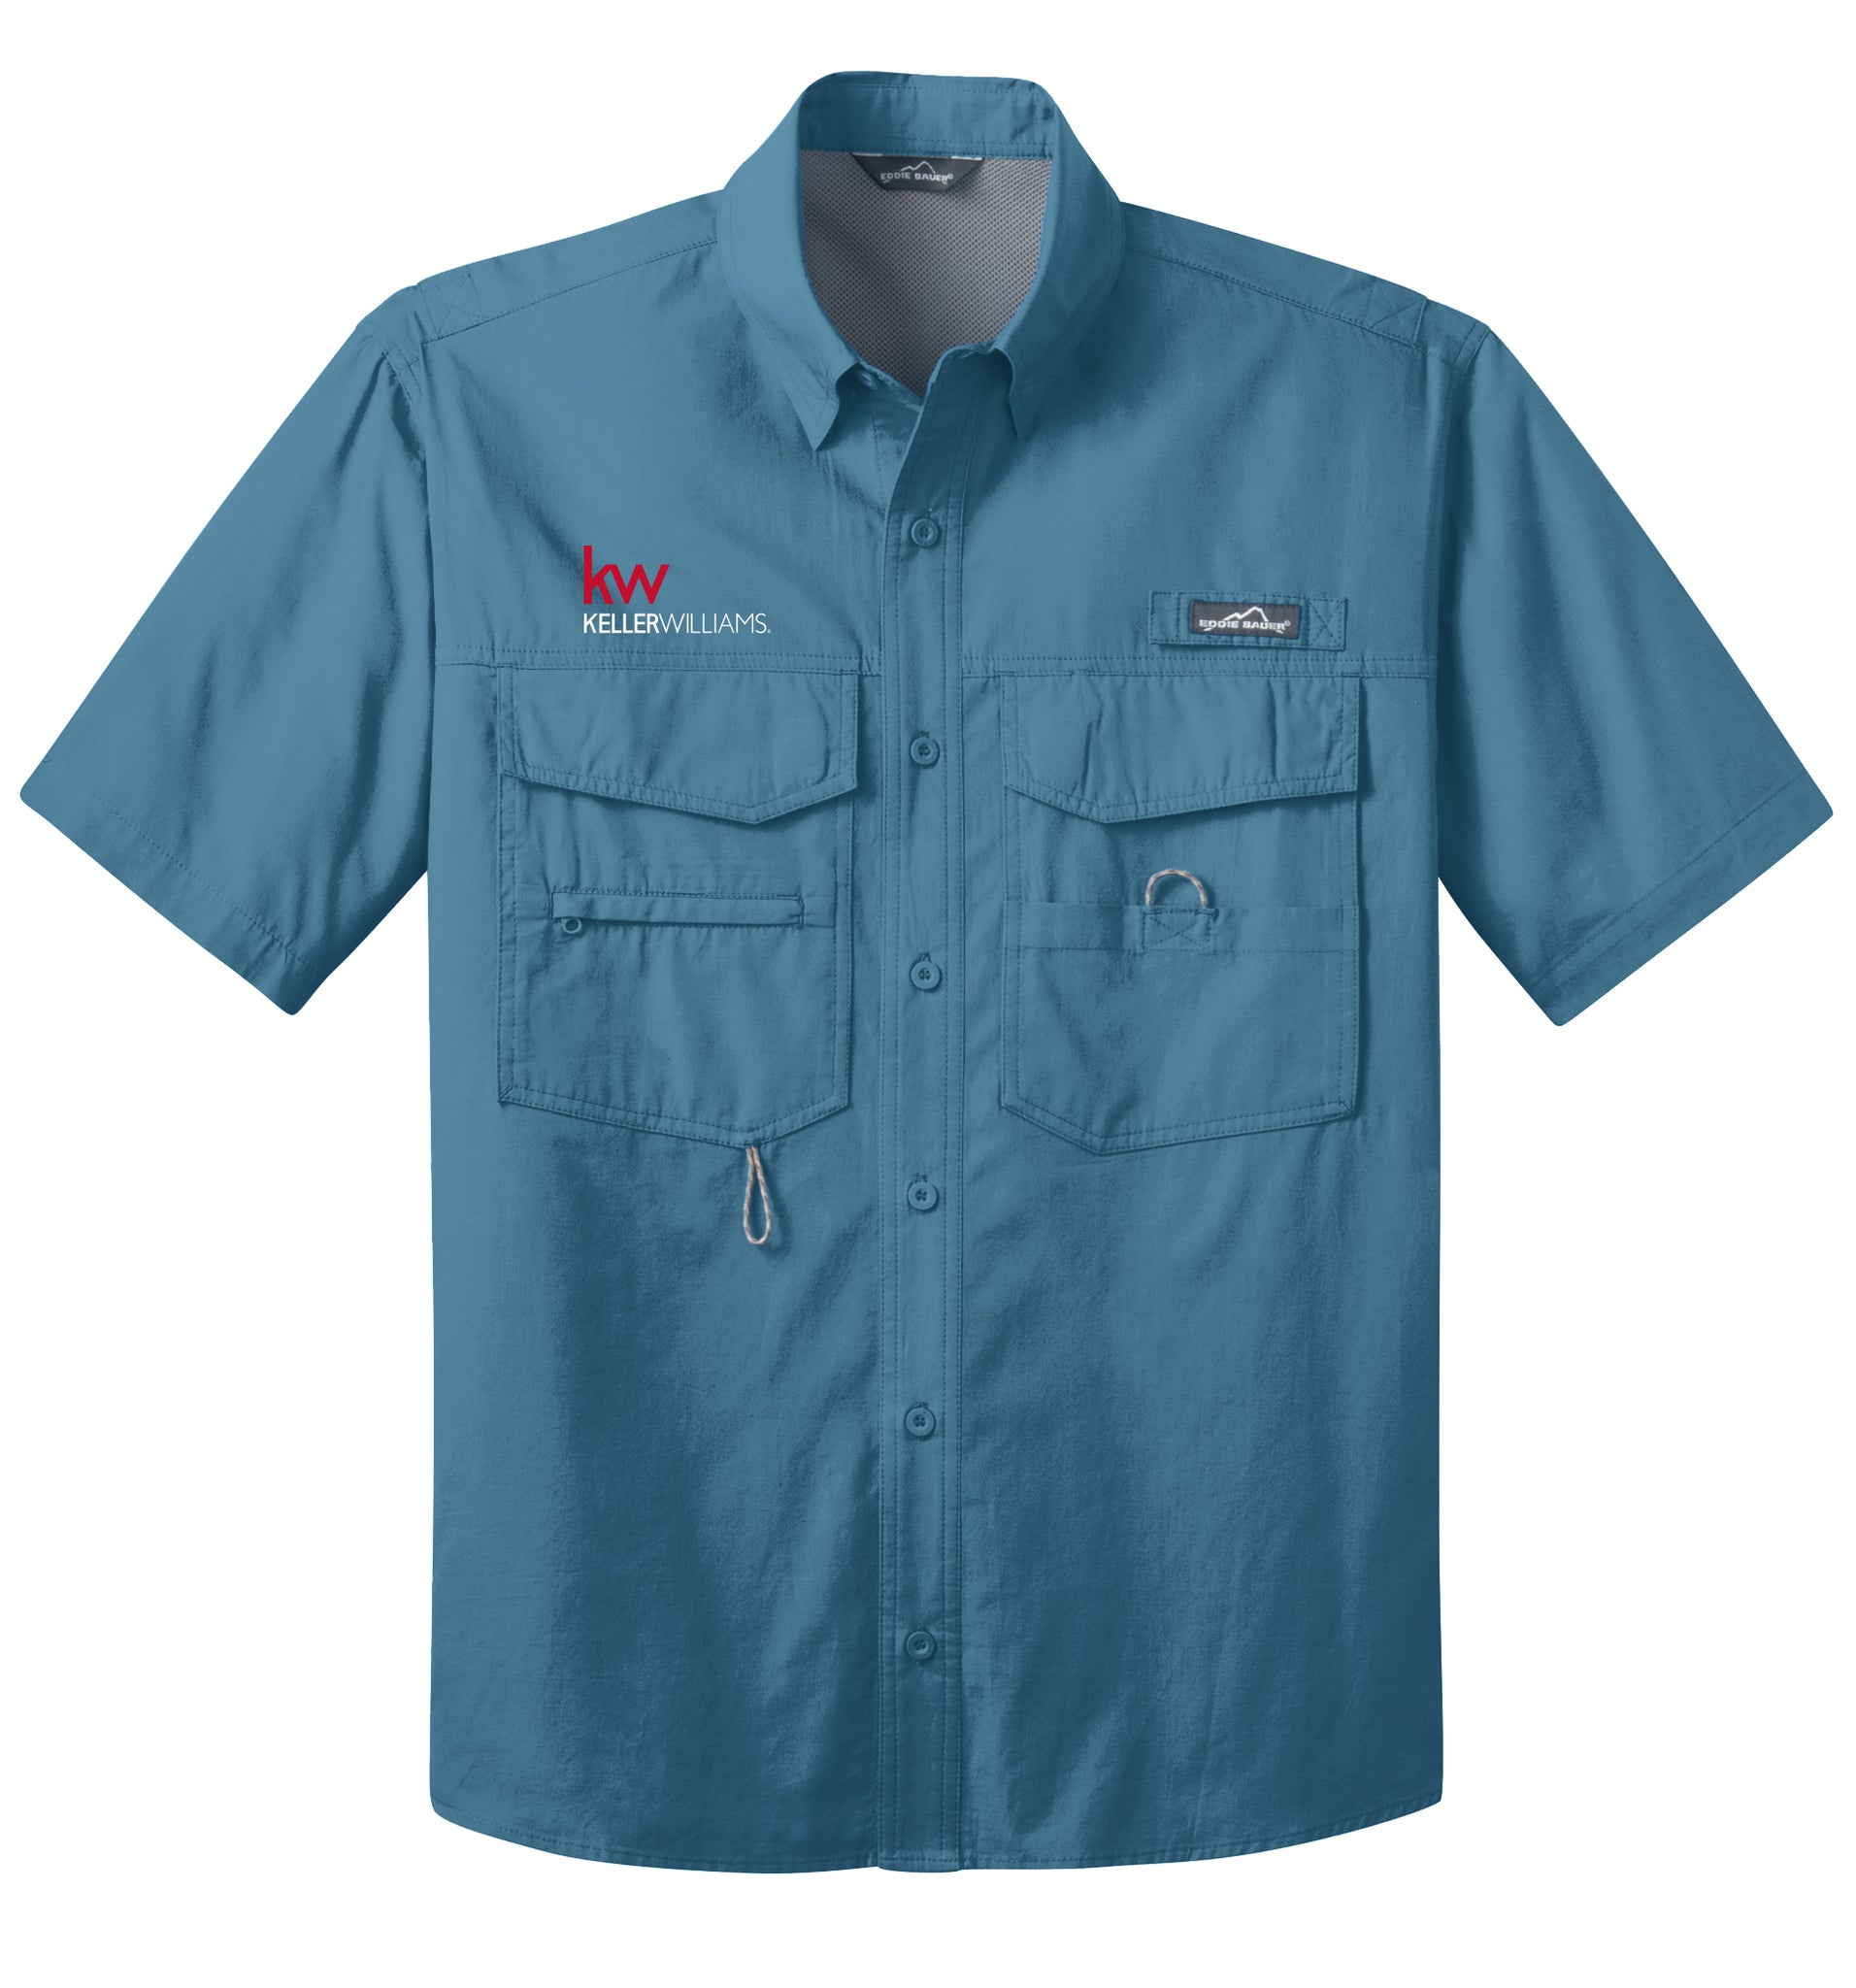 Men's KW Fishing Shirts